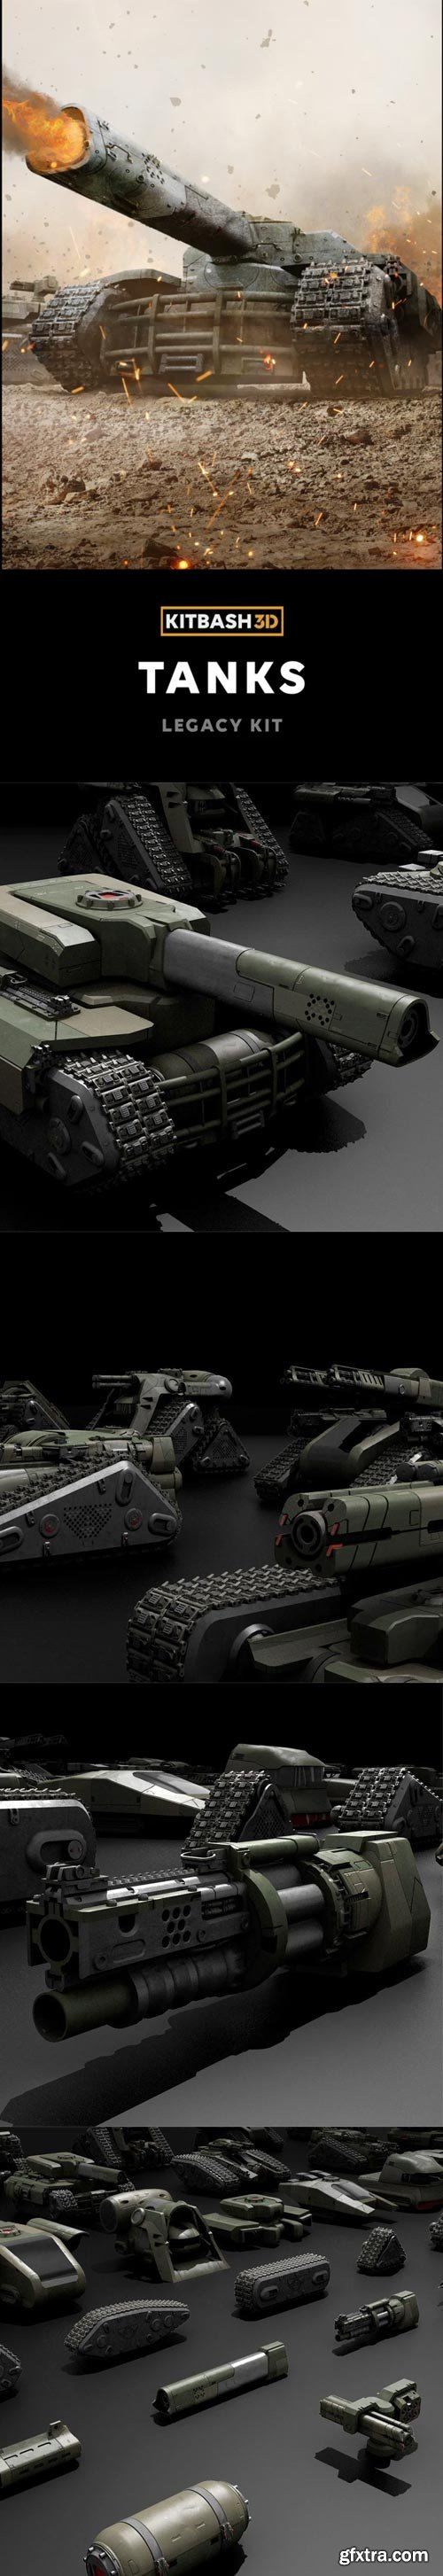 Kitbash3D - Veh: Tanks